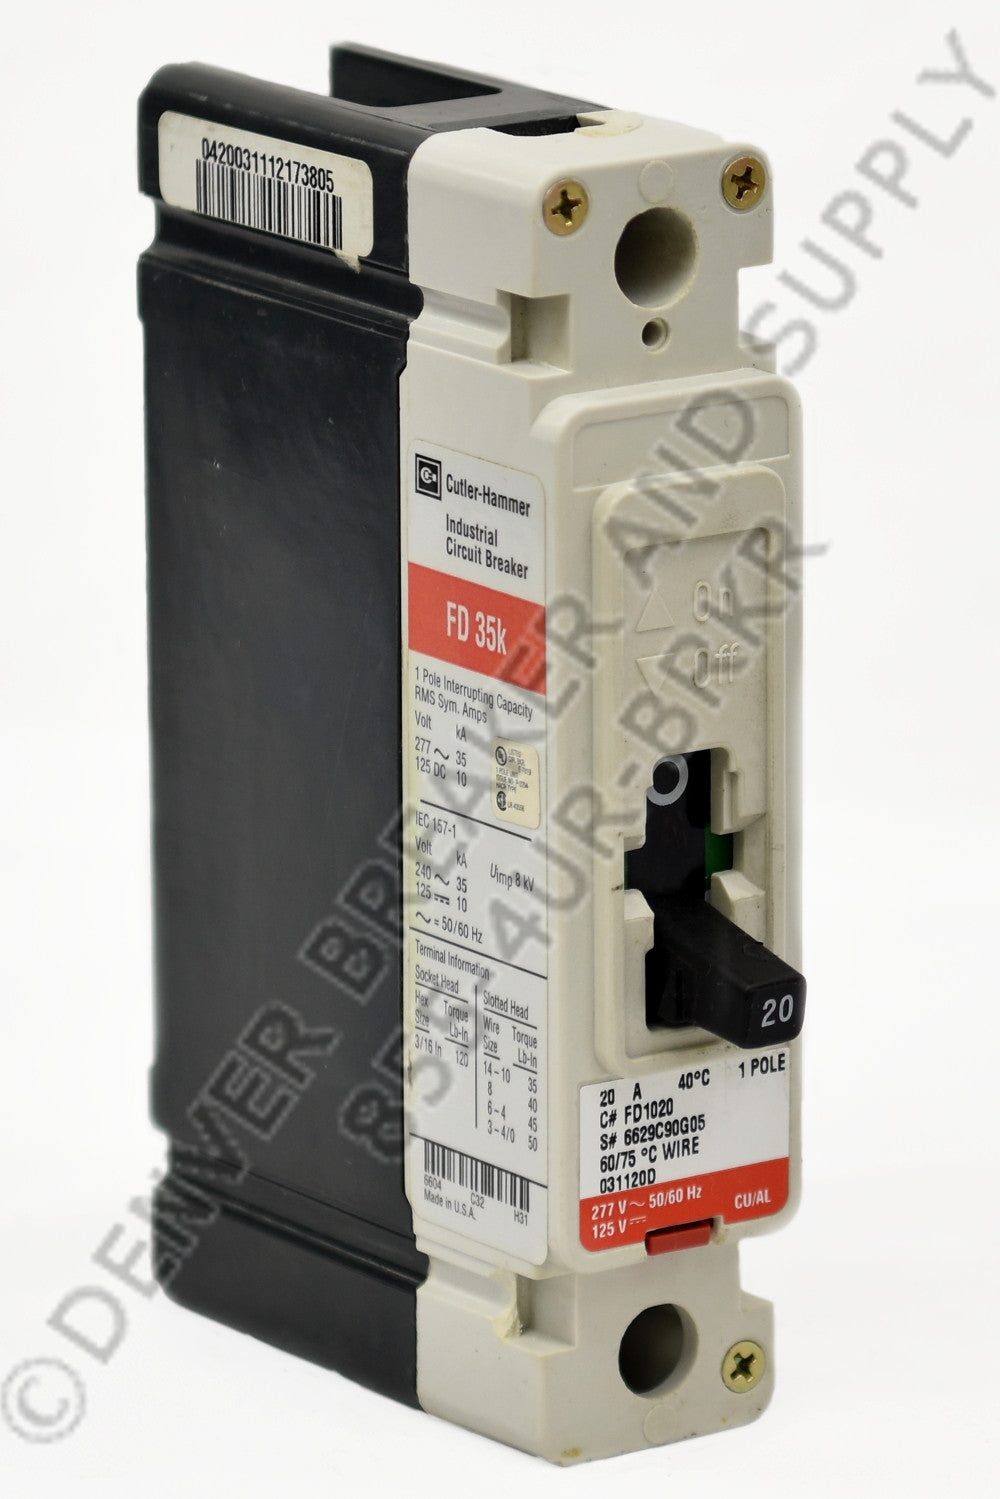 Cutler Hammer FD1050 Circuit Breakers